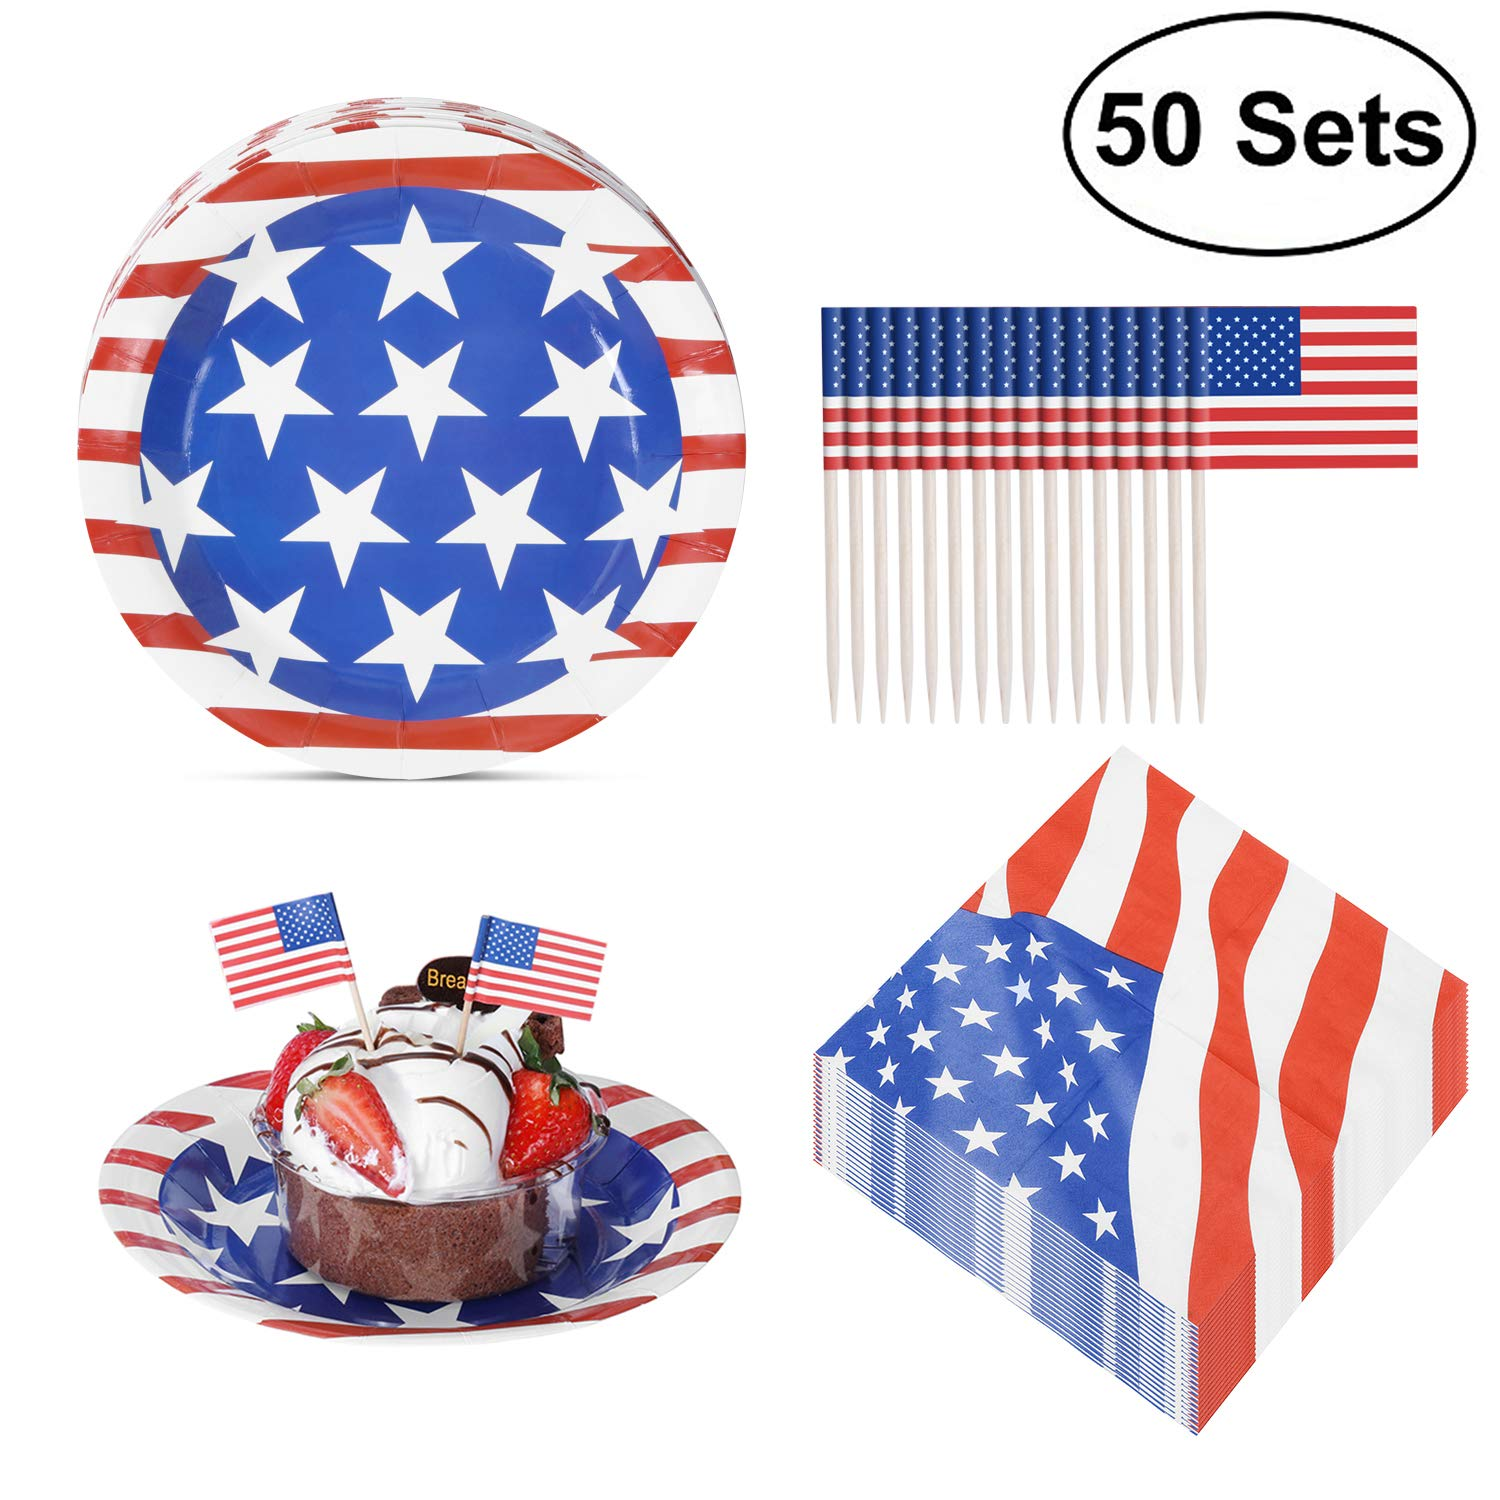 JOYSEAS Party Disposable Paper Plates Pack with 50 Plates, 50 Napkins and 50 Mini American Flags for Veterans Day, Labor Day, Flag Day